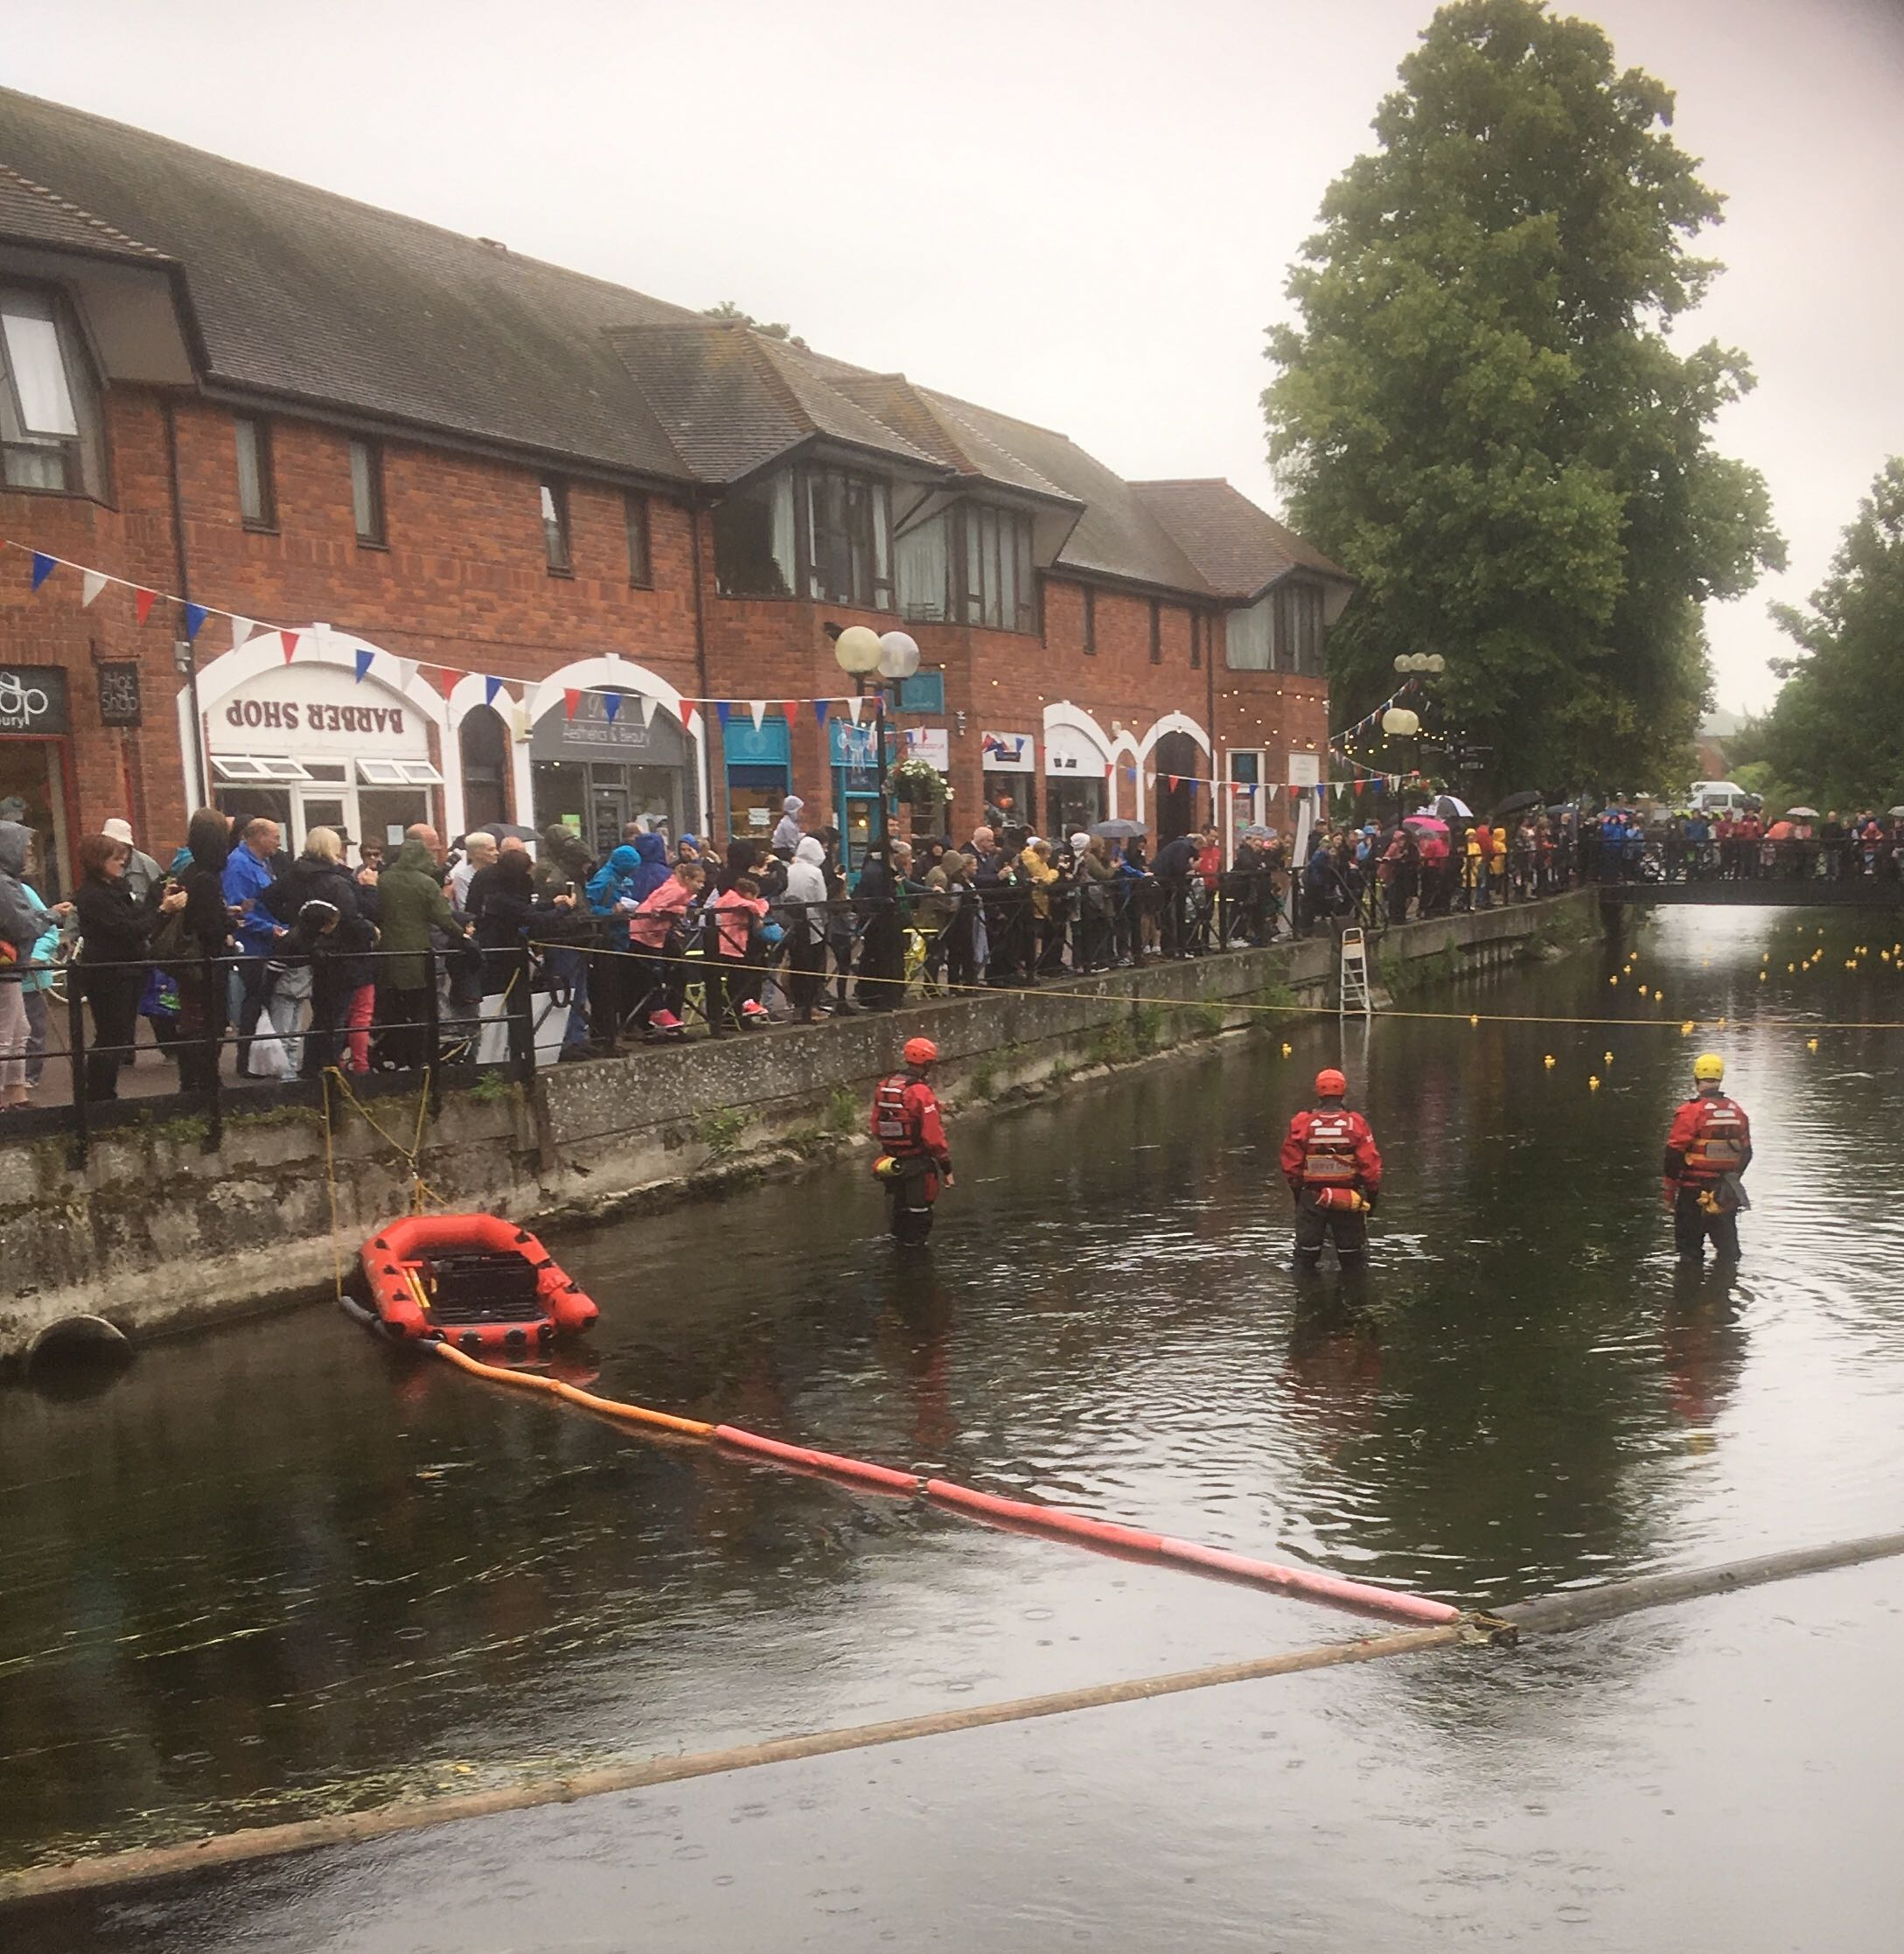 Serve On volunteers provided safety cover for the Salisbury Duck Race, run by Spire FM in aid of the Stars Appeal.